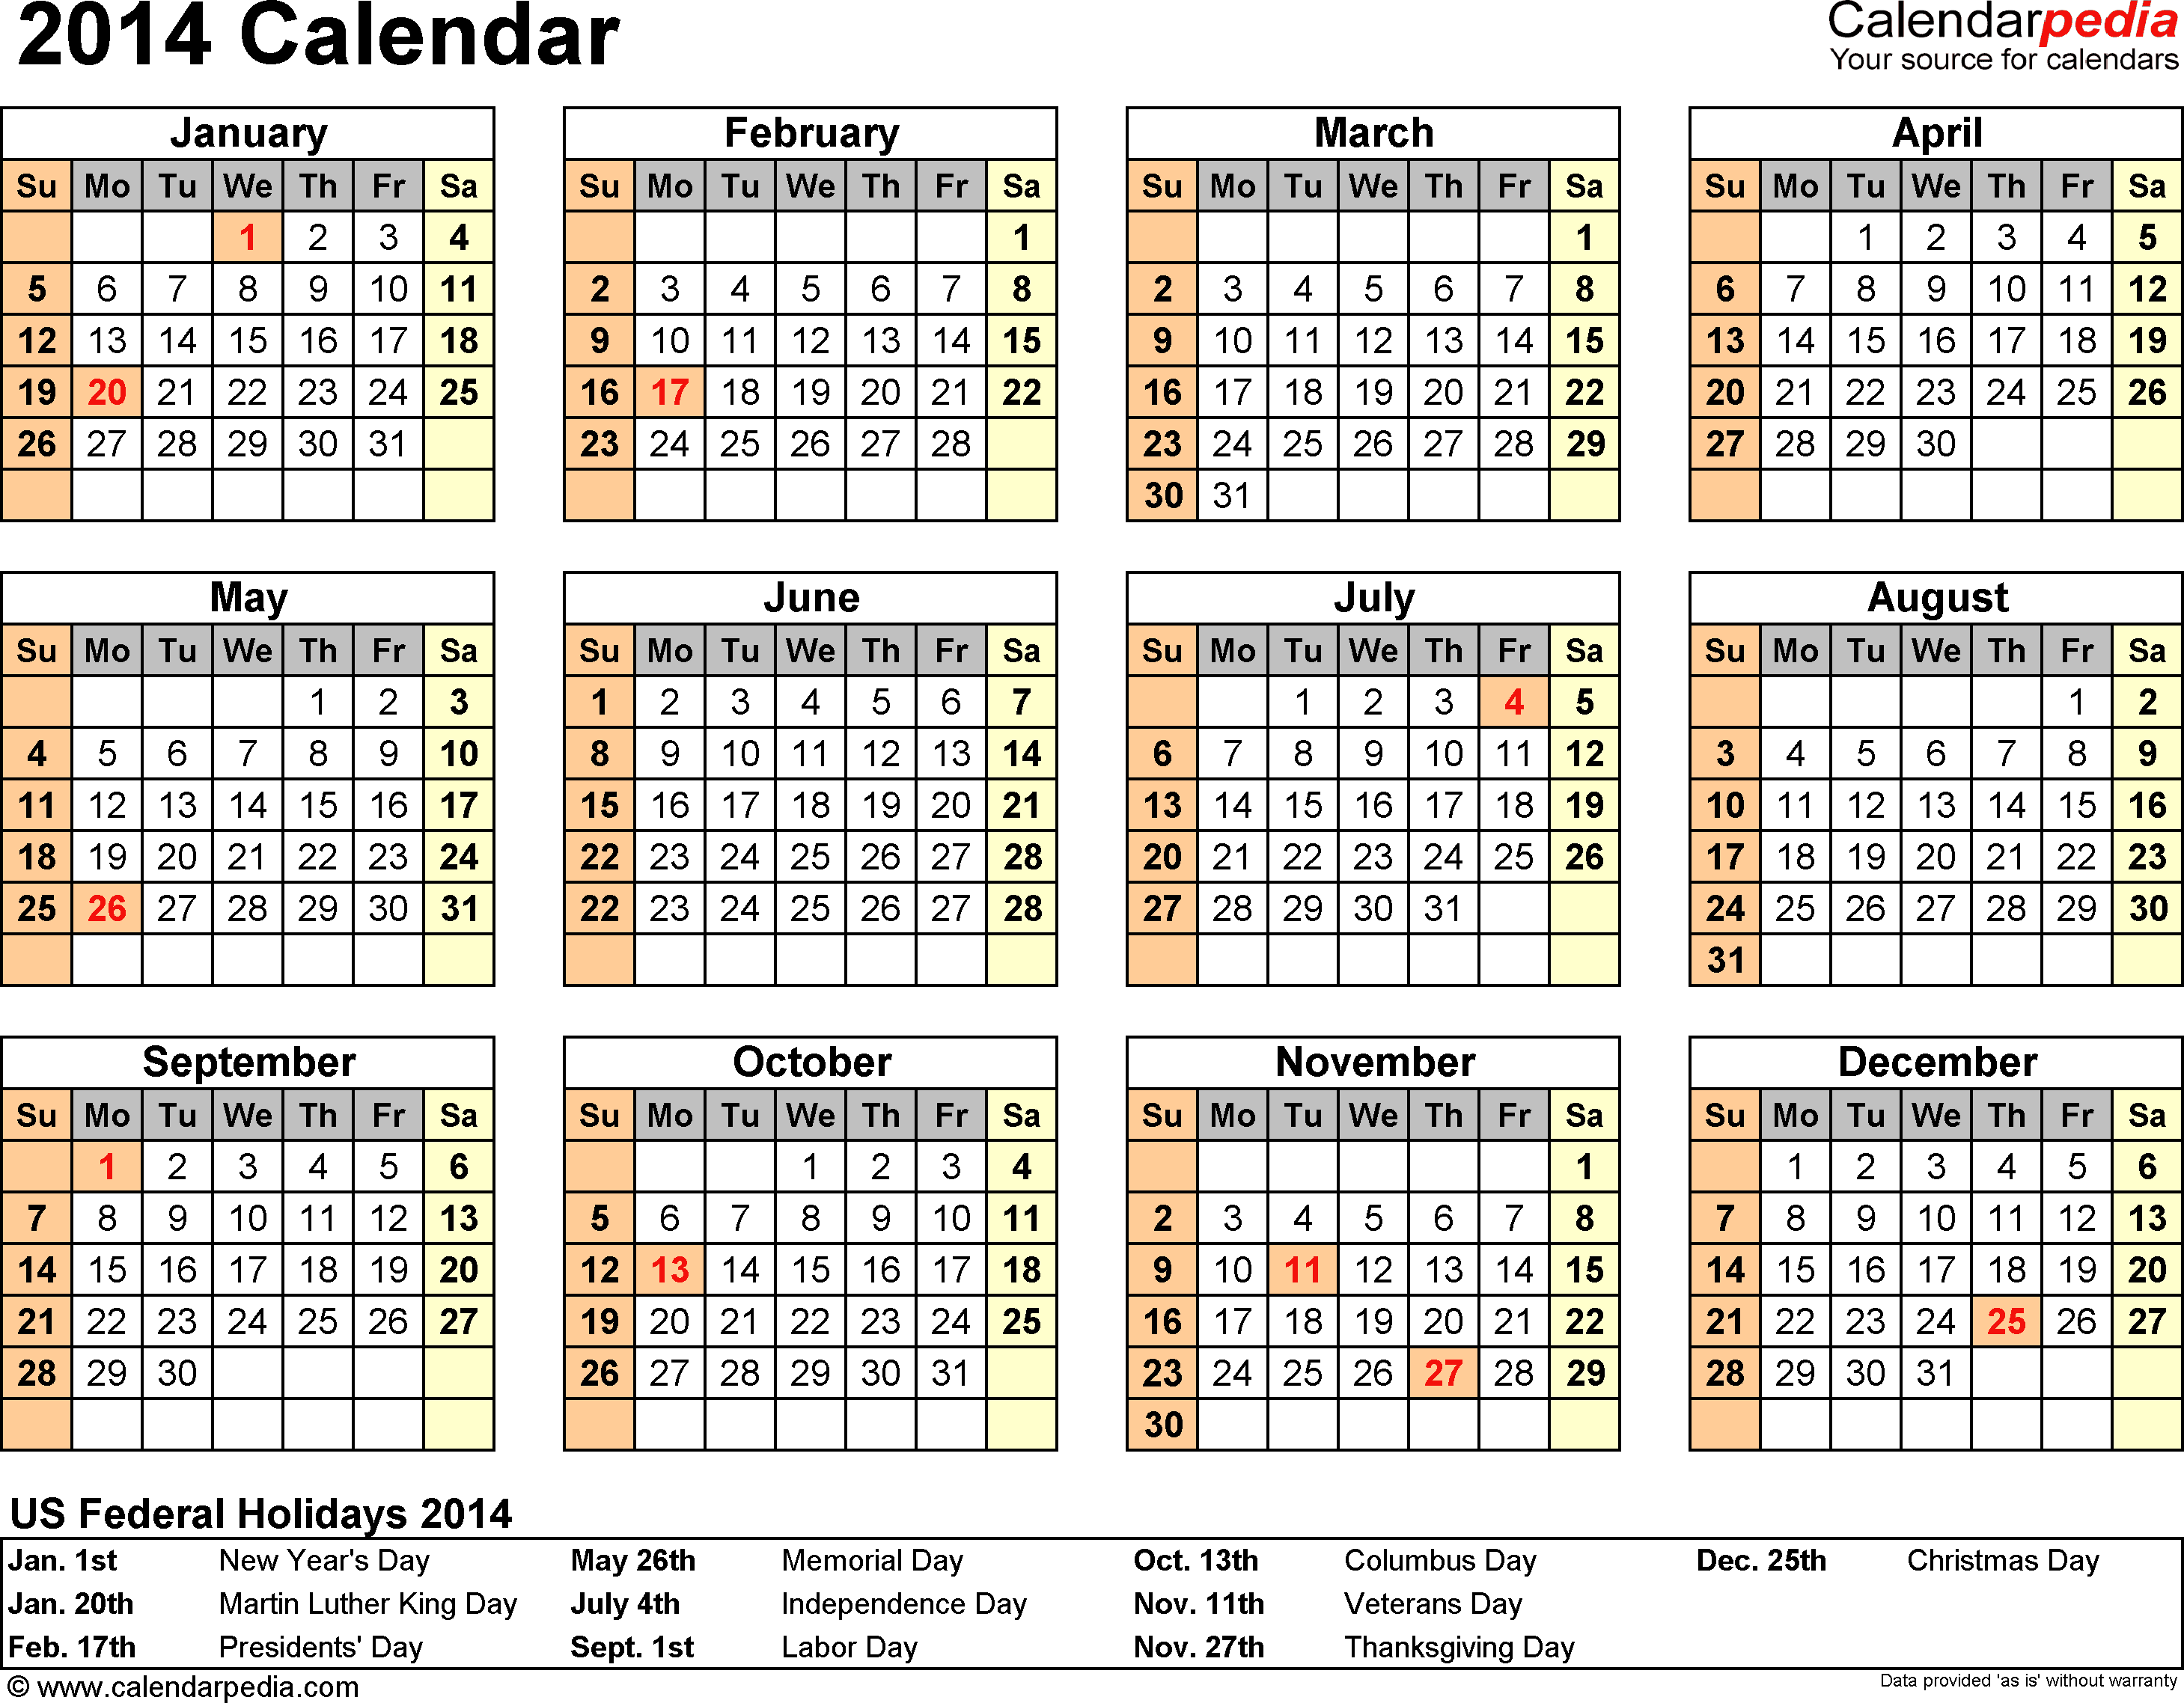 Template 8: 2014 Calendar for PDF, year at a glance, 1 page